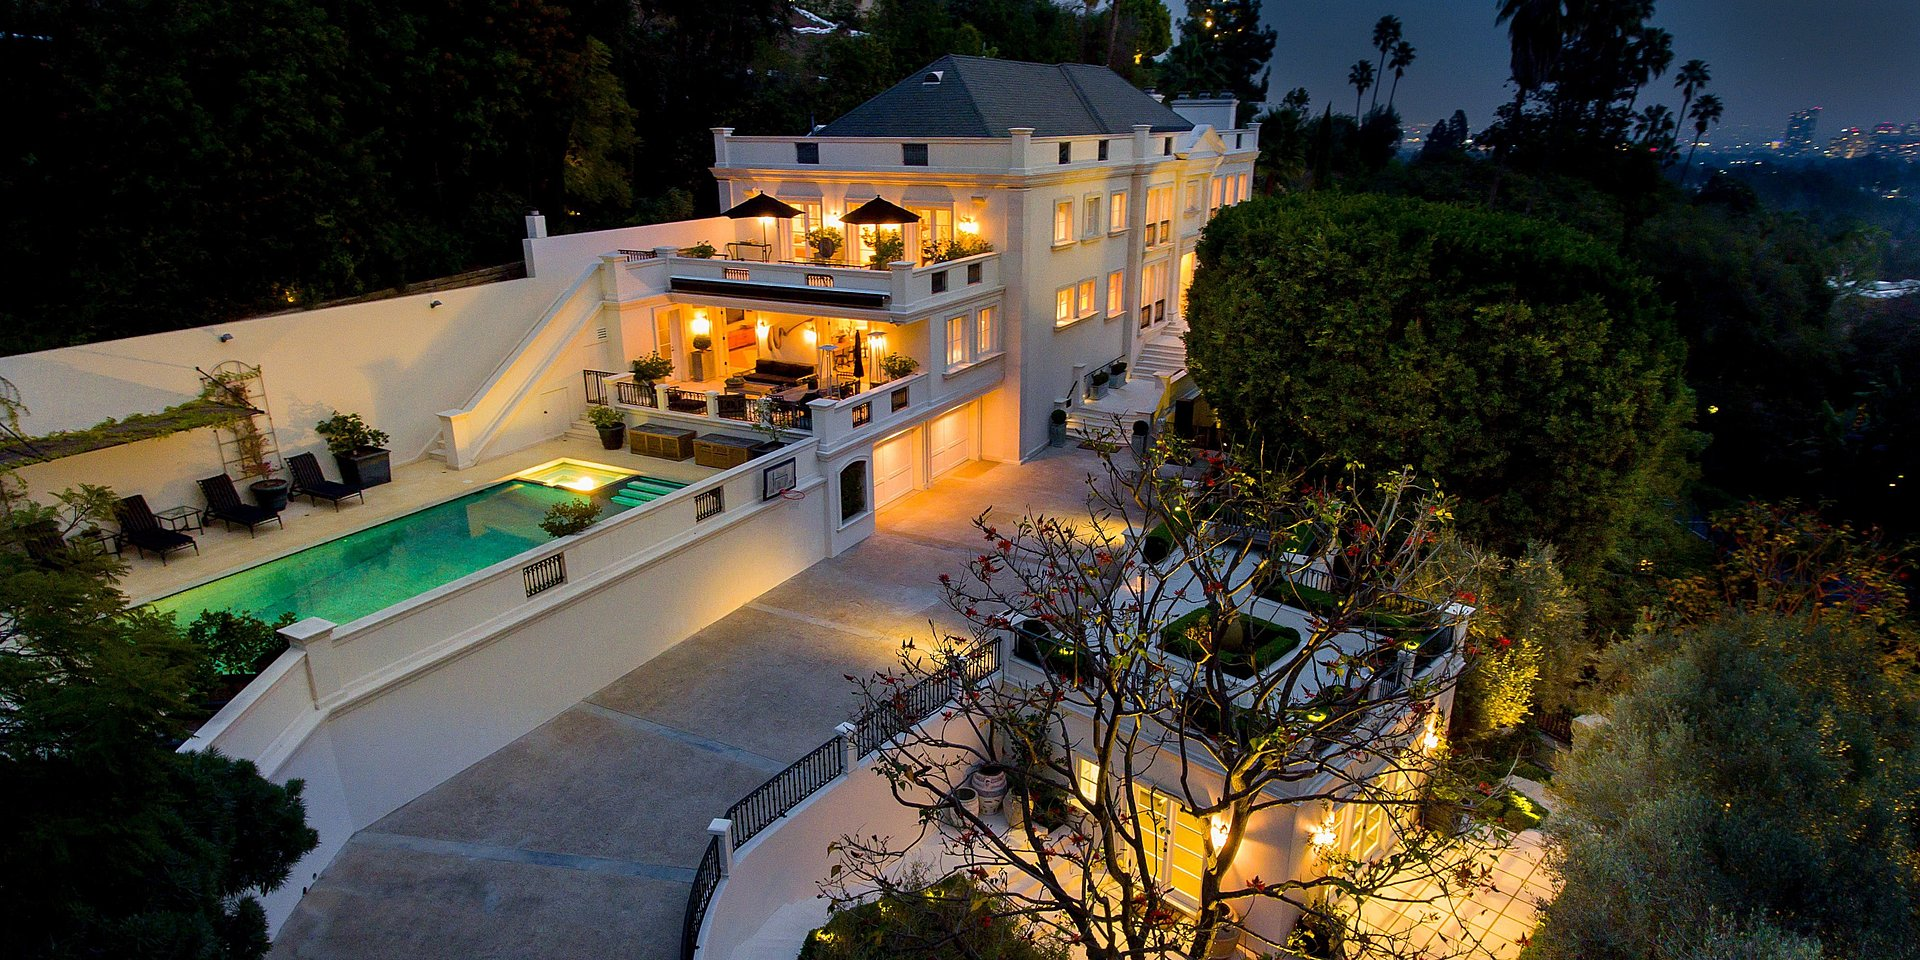 Coldwell Banker Residential Brokerage Lists Bel Air Property for $17.95 Million